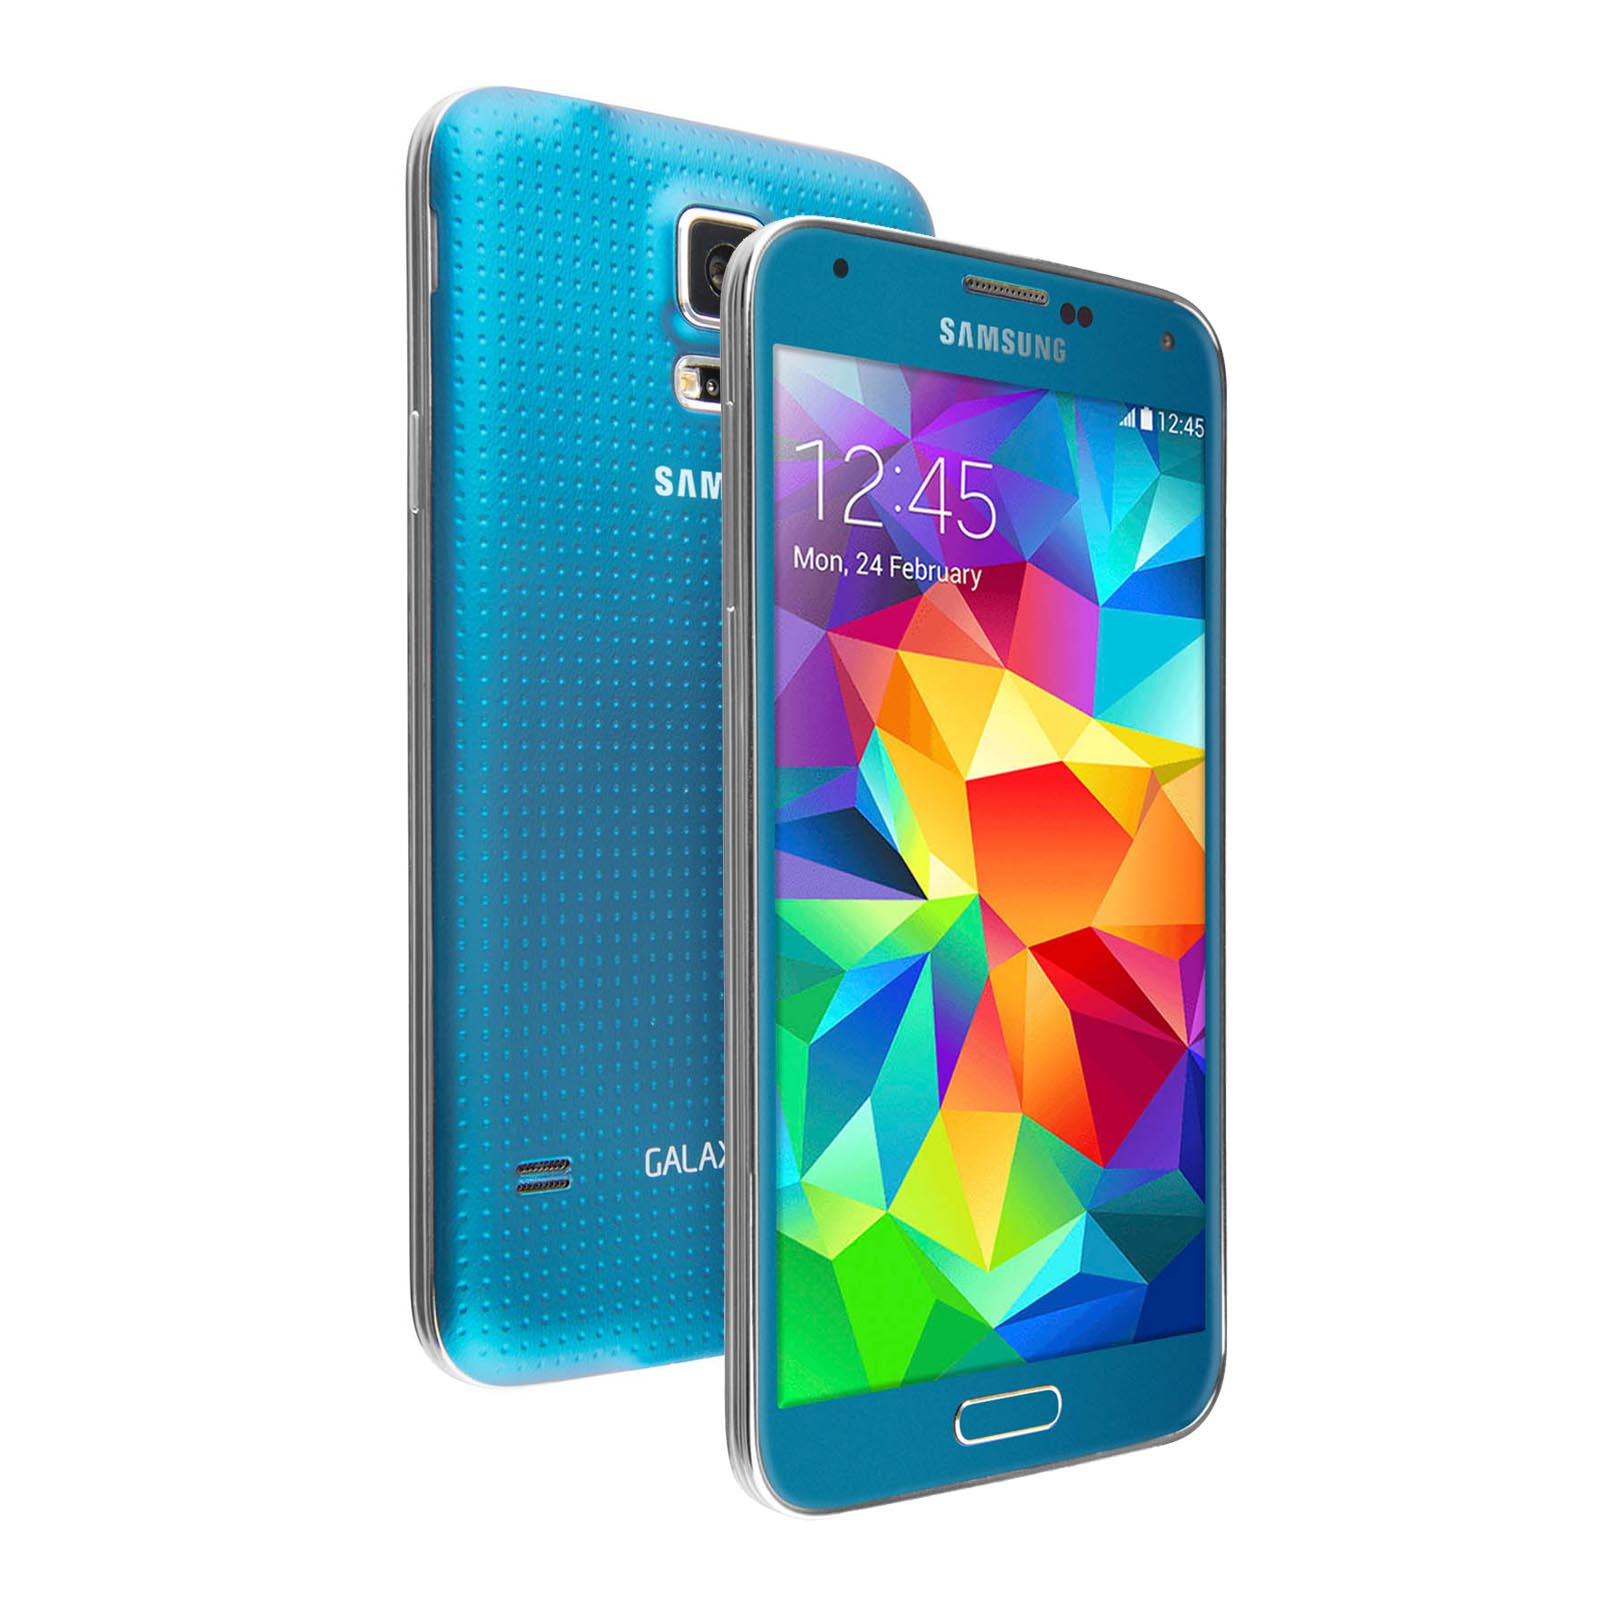 Samsung Galaxy S5 Verizon + GSM Factory Unlocked 16GB 4G ...